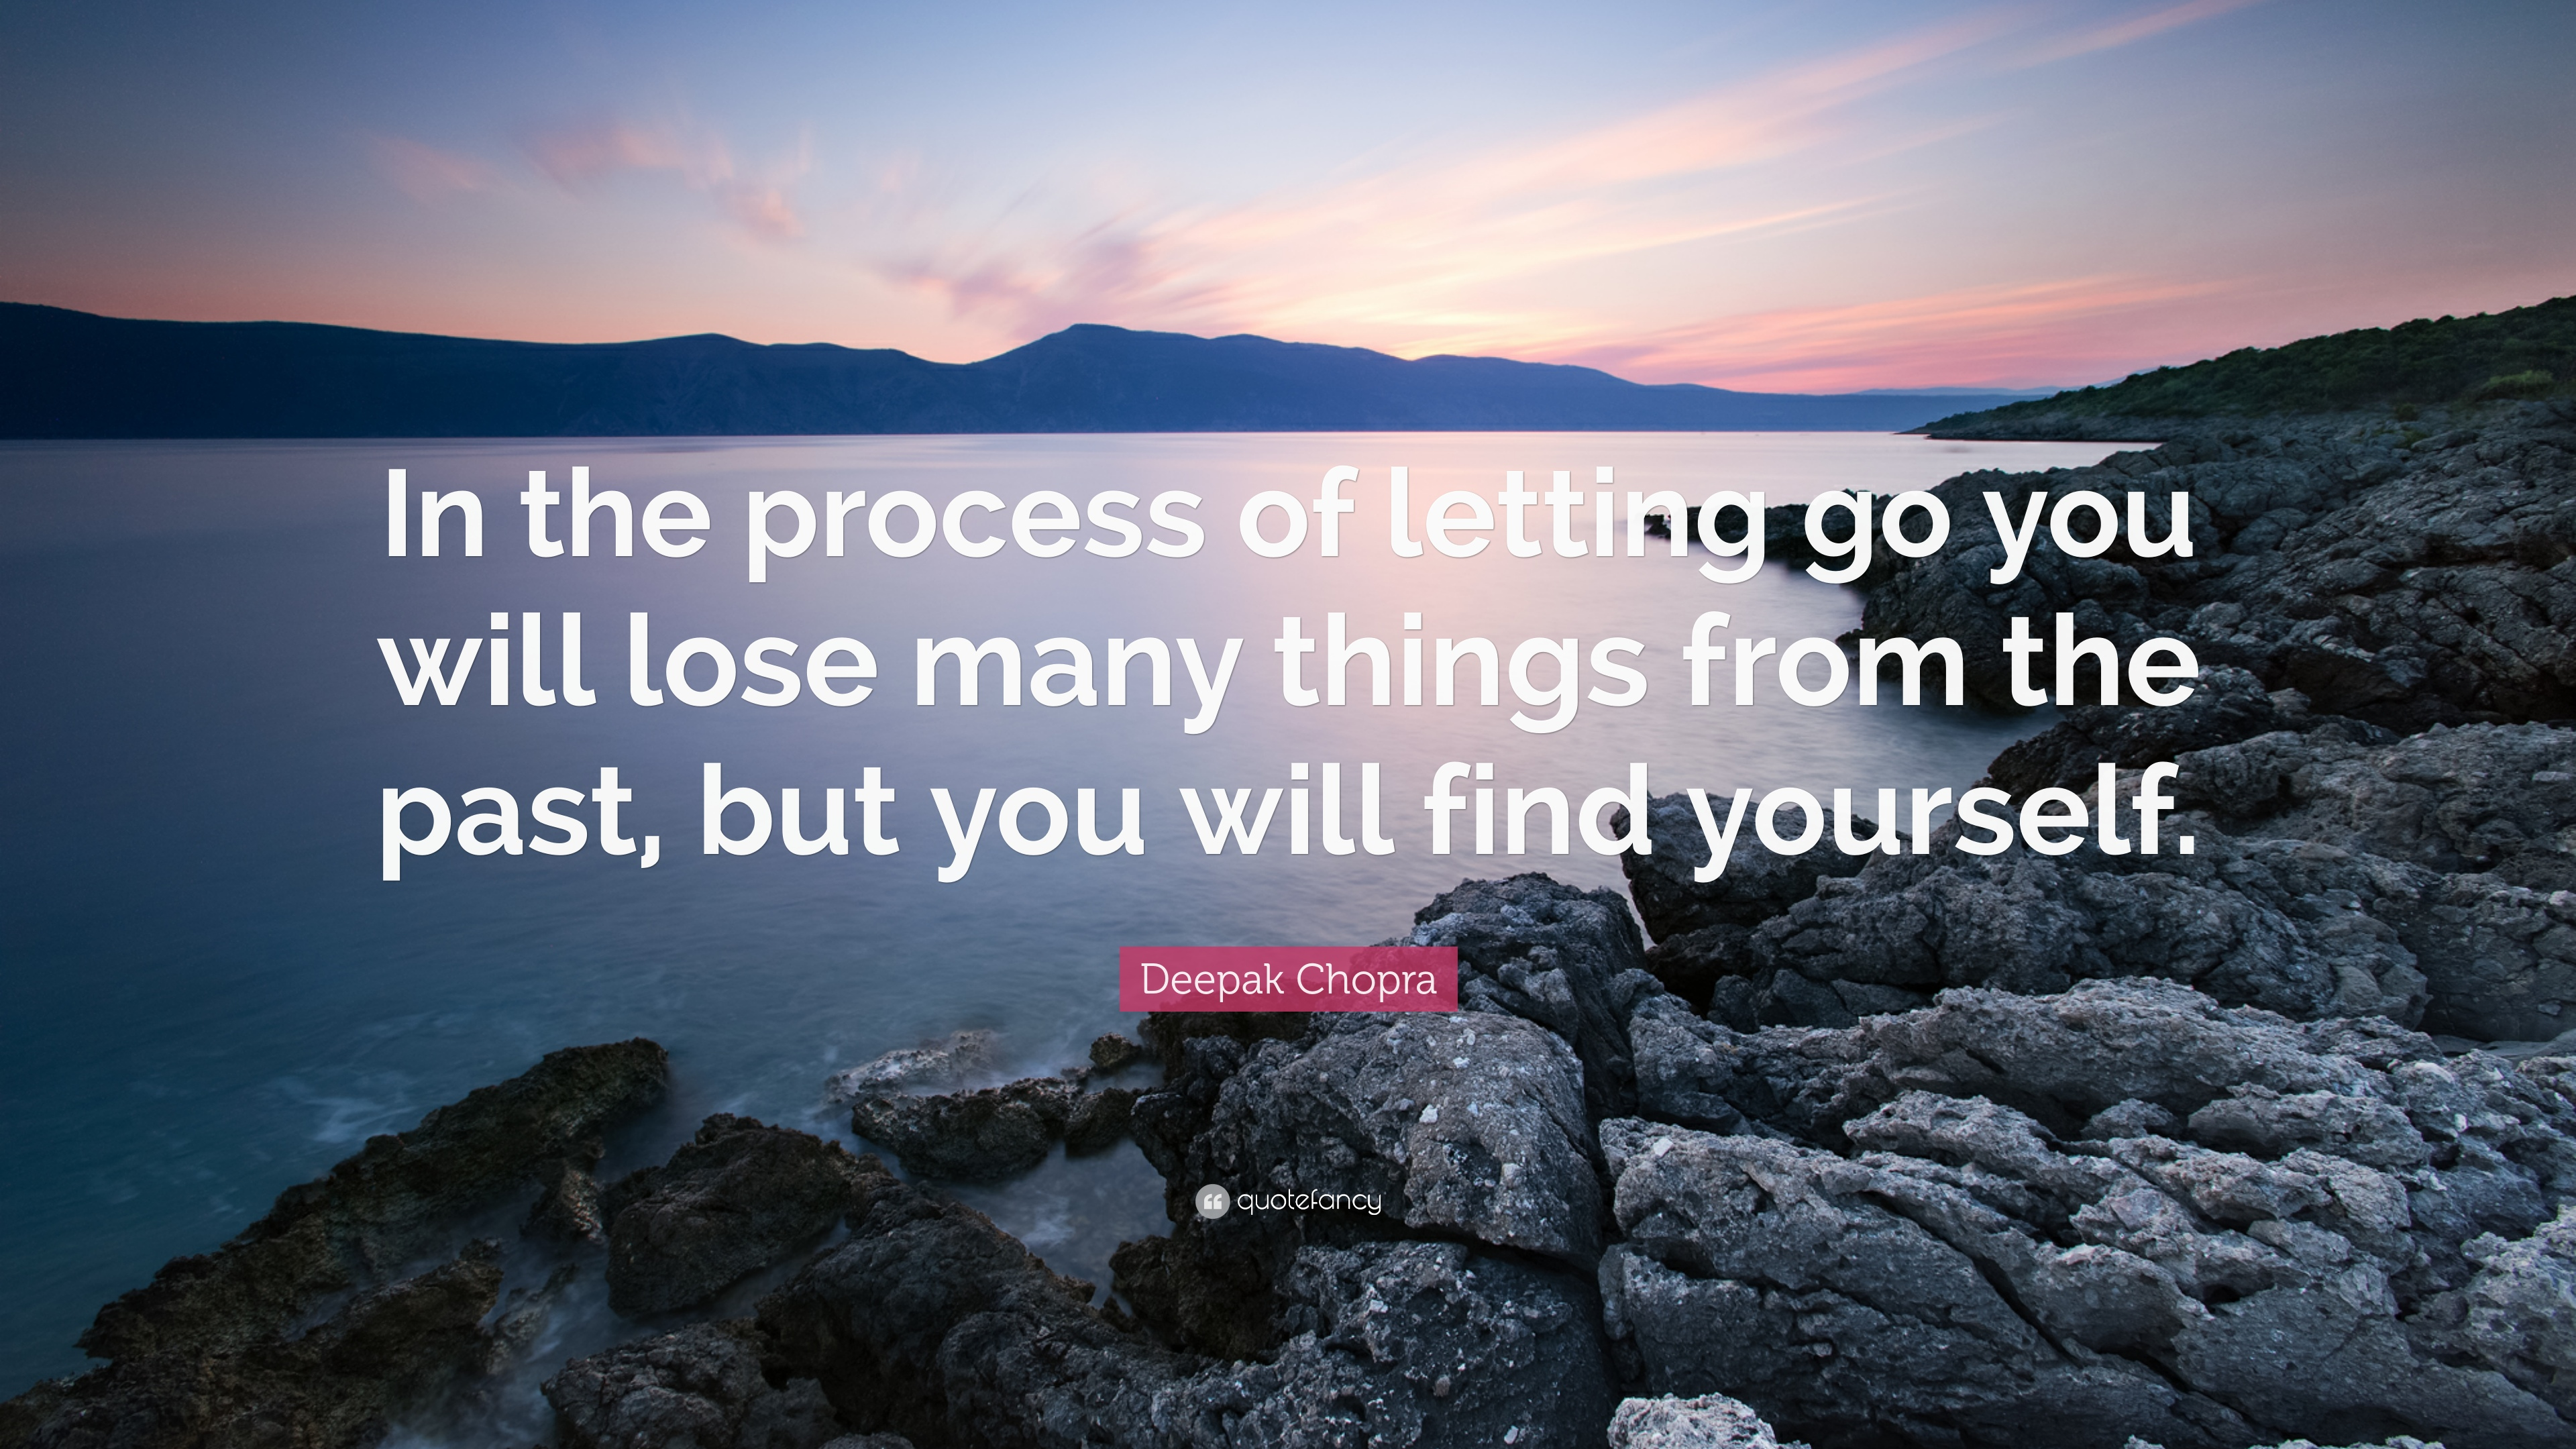 Perfect Deepak Chopra Quote: U201cIn The Process Of Letting Go You Will Lose Many Things